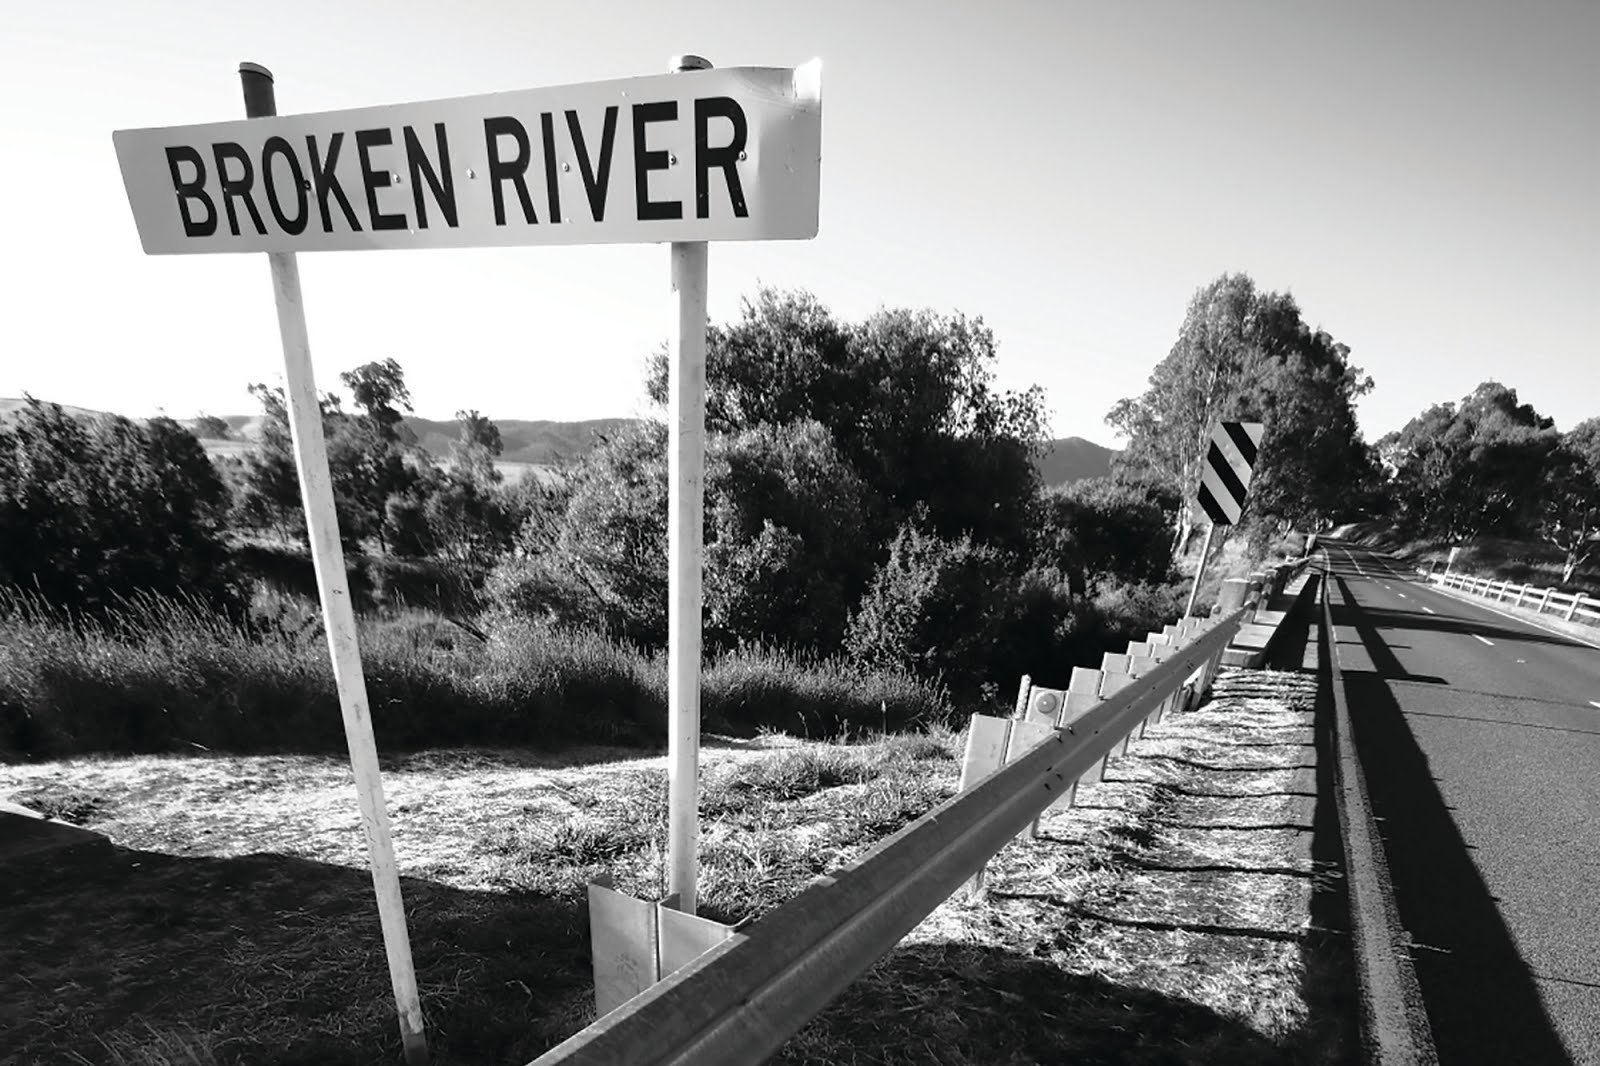 BROKEN RIVER - Revelations striking the heart!